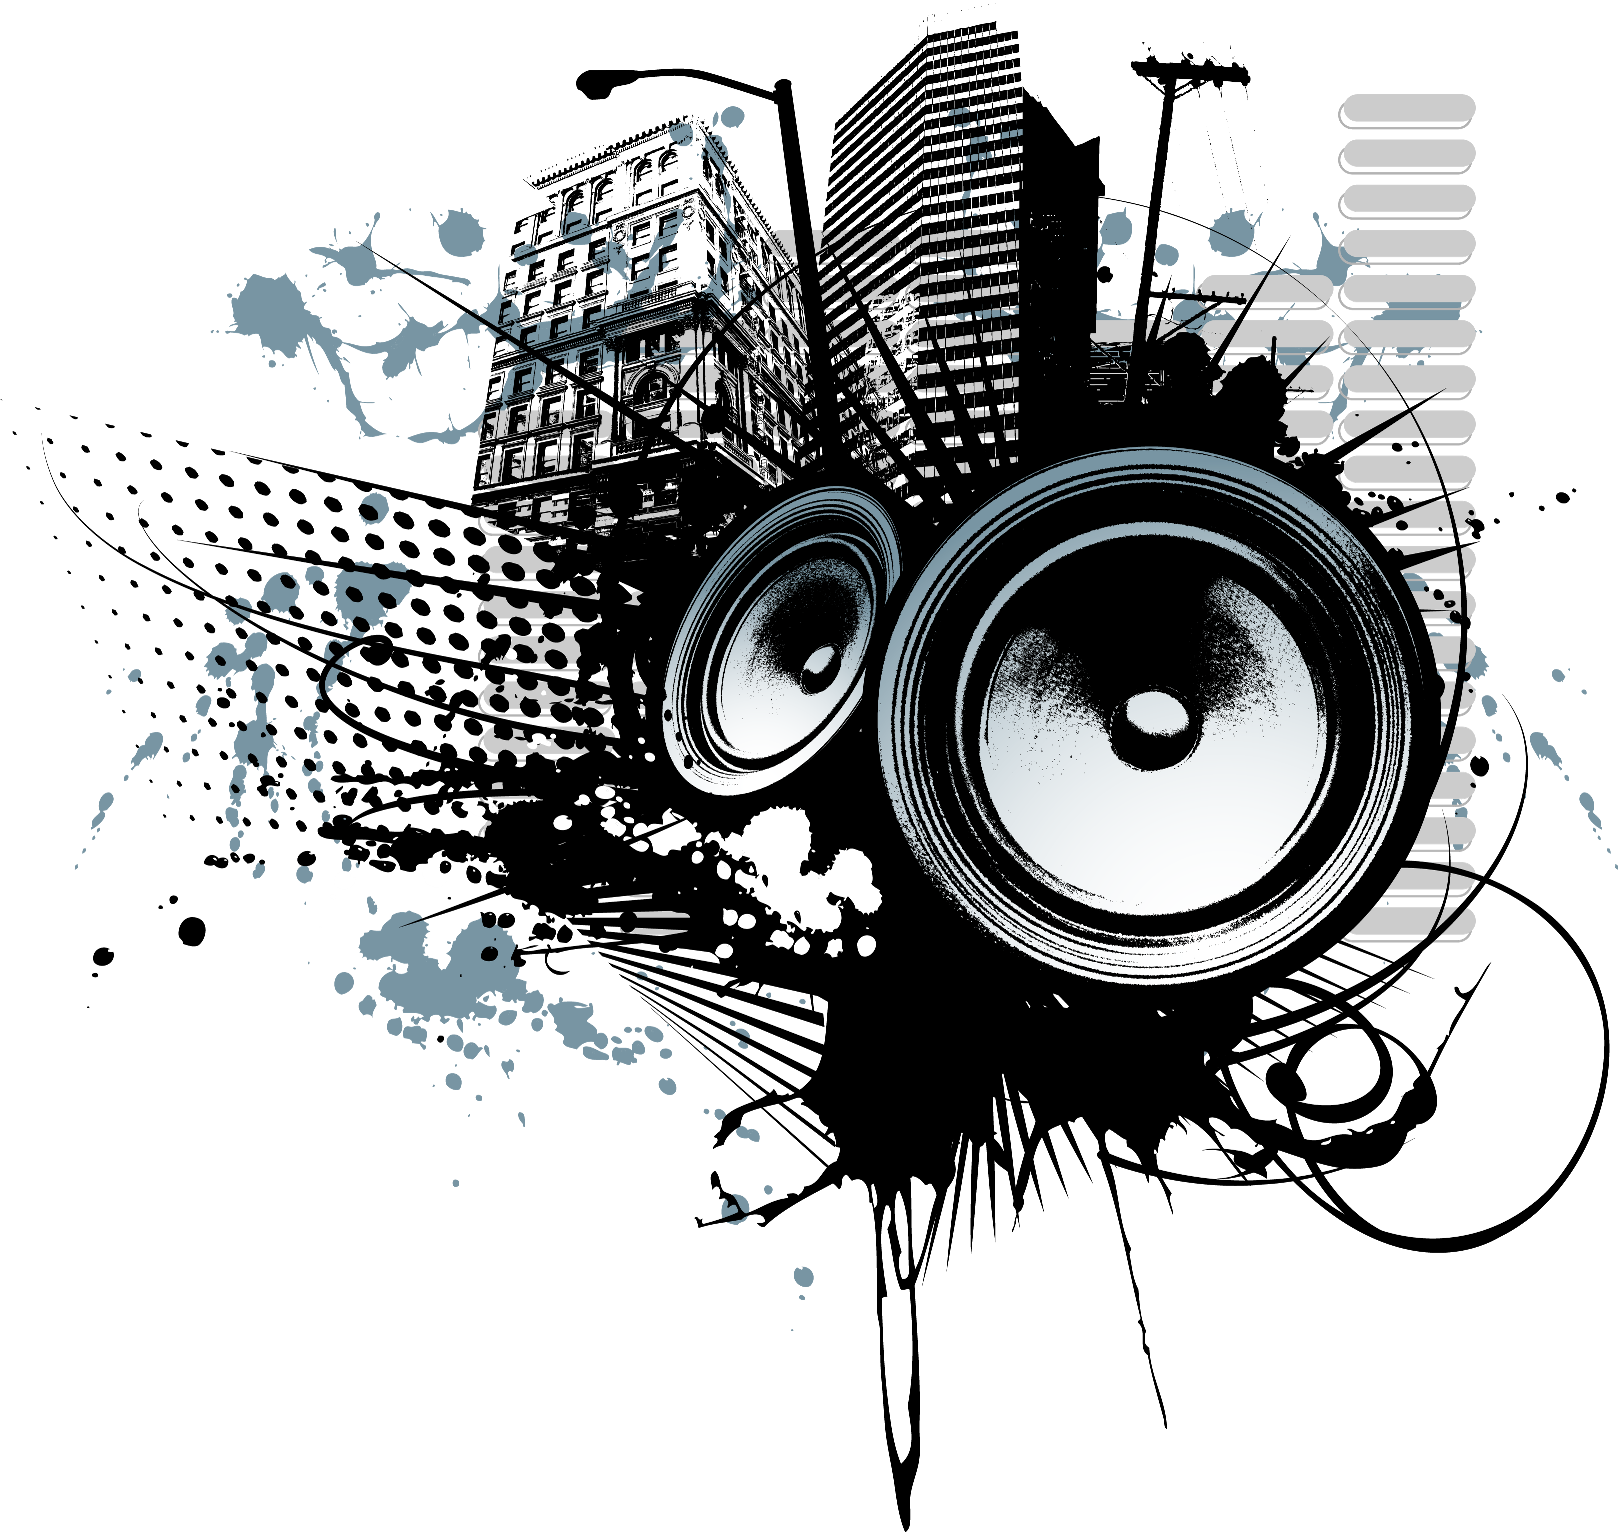 Speakers art png. Music image